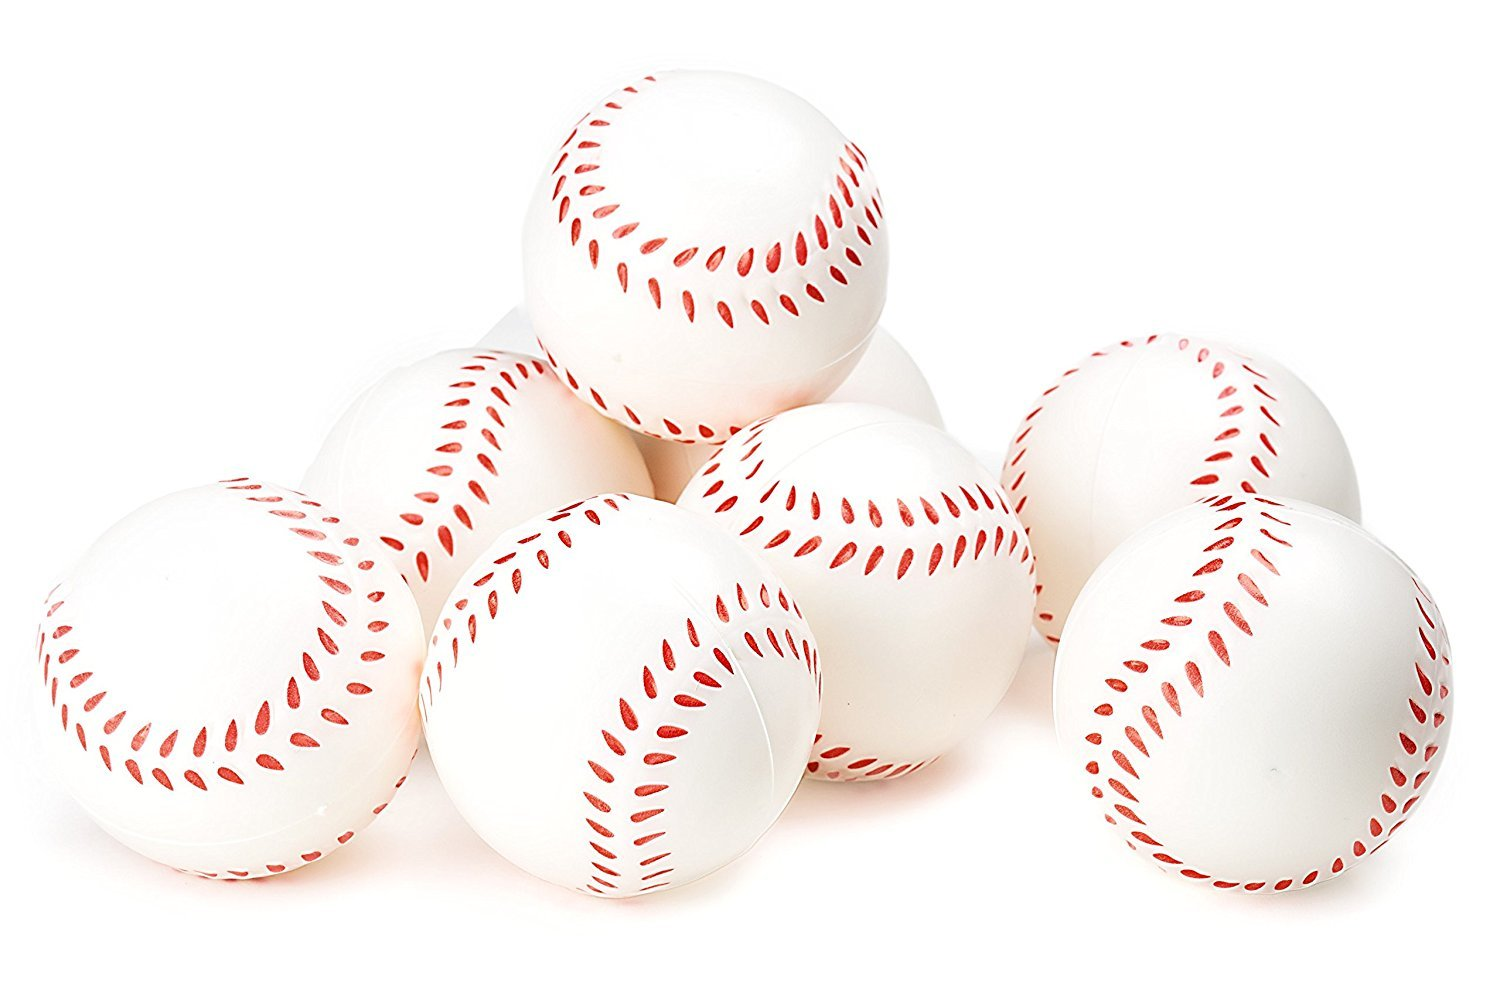 Baseball stress ball Sports Themed 2.5-Inch Foam Squeeze Balls for Stress Relief, Relaxable Realistic Baseball Sport Balls - Bulk 1 Dozen by B.N.D